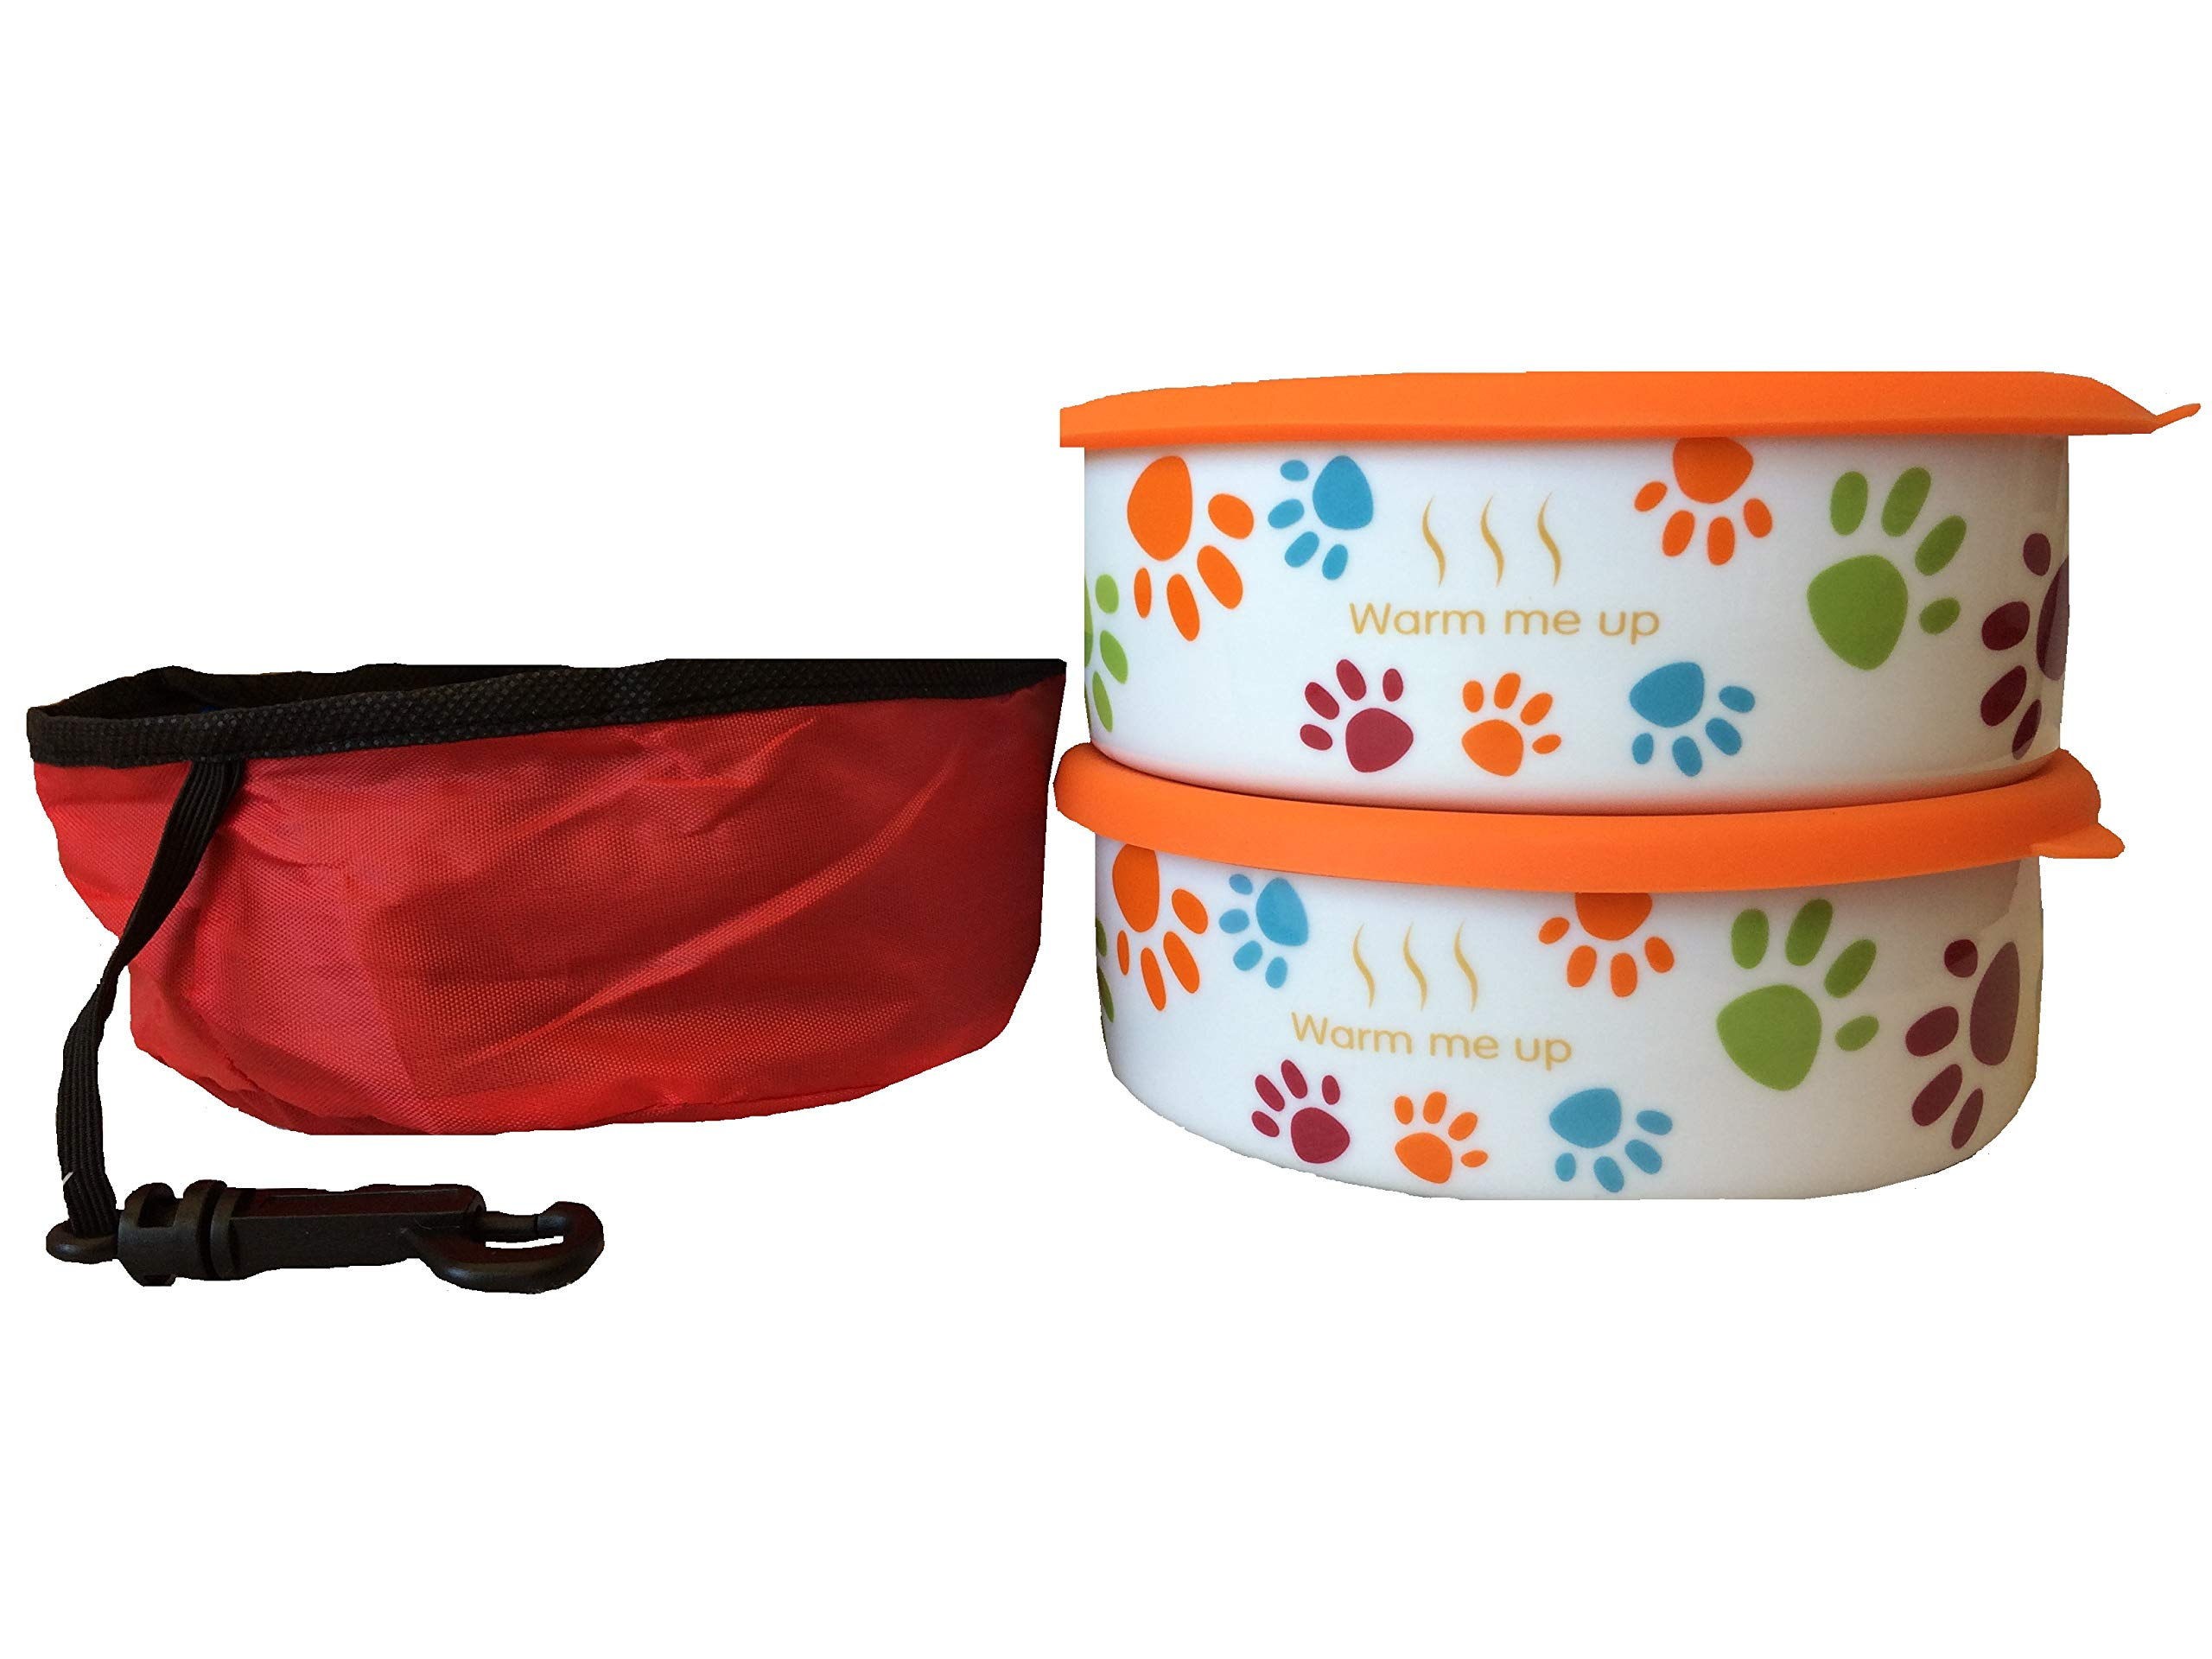 2 Dog/Cat Bowls with Lid Plus a Free Pet Travel Bowl. This Pet Dish Set is FDA Approved Porcelain Material+ airtight Storage lid Plus Collapsible Pet Travel Bowl for Dog cat Food or Water by Quality Line Pet Products